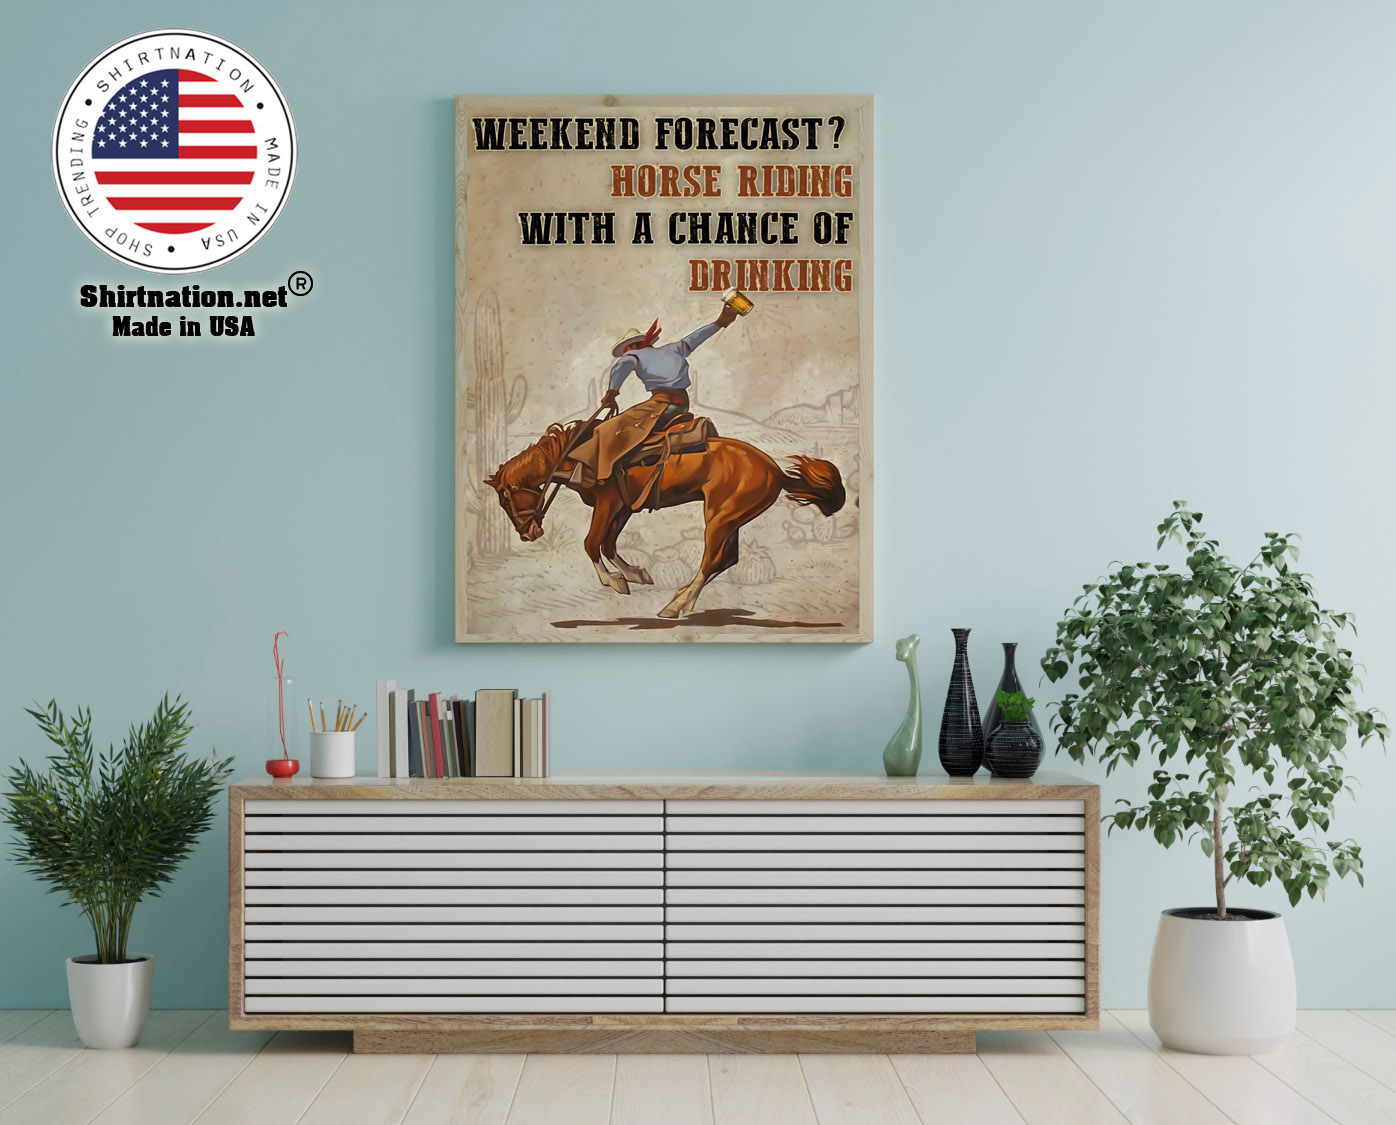 Weekend forecast horse riding with a chance of drinking poster 12